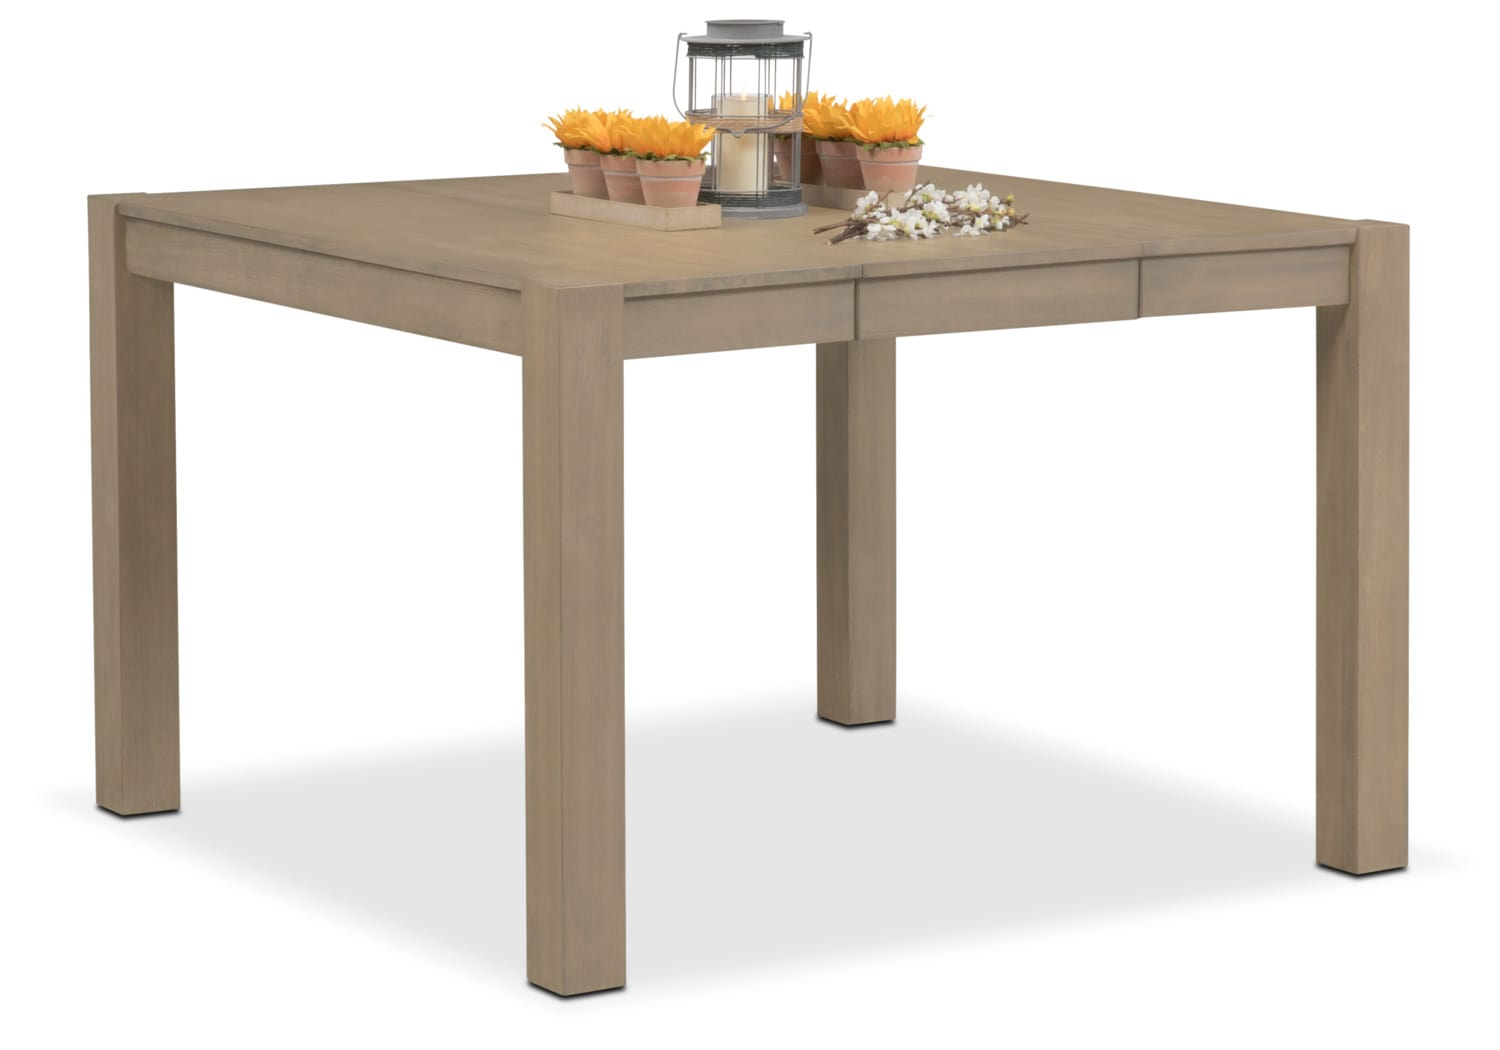 Shop All Dining Room Tables Value City Furniture : 501092 from www.valuecityfurniture.com size 1500 x 1050 jpeg 86kB